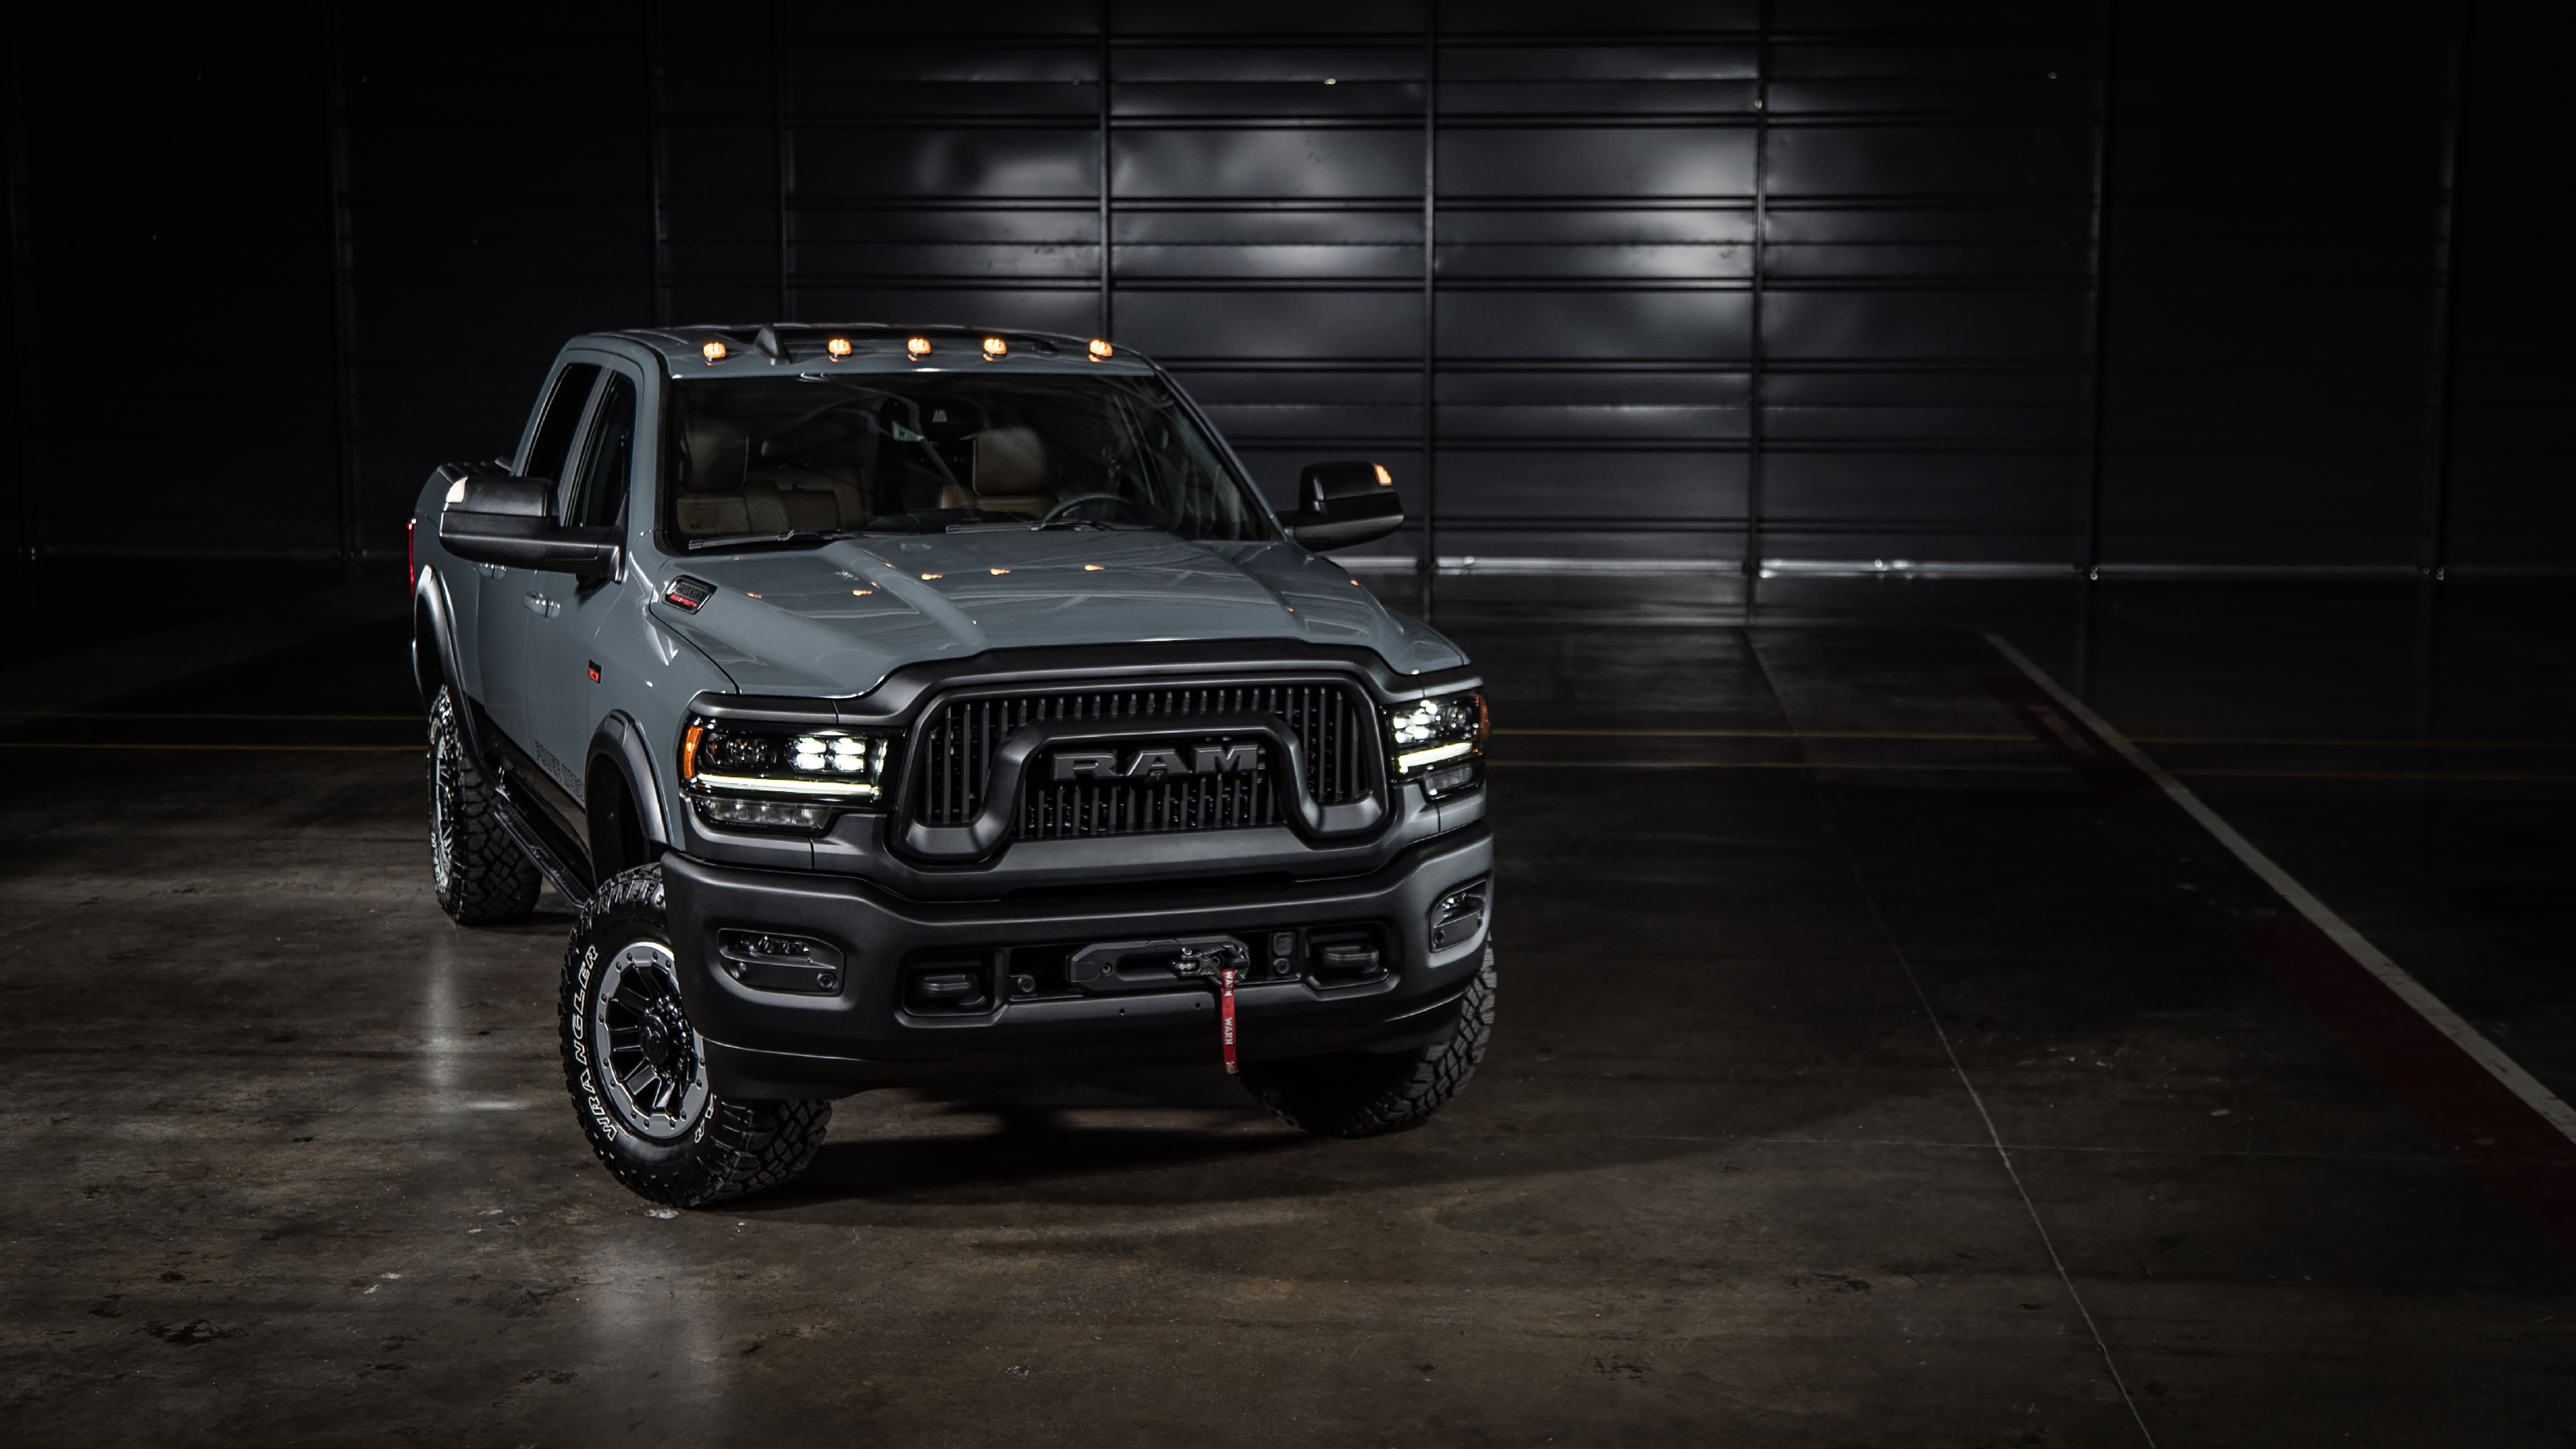 2021 Ram 2500 Power Wagon 75th Anniversary Edition Crew Cab 4k Wallpaper Hd Car Wallpapers Id 16451